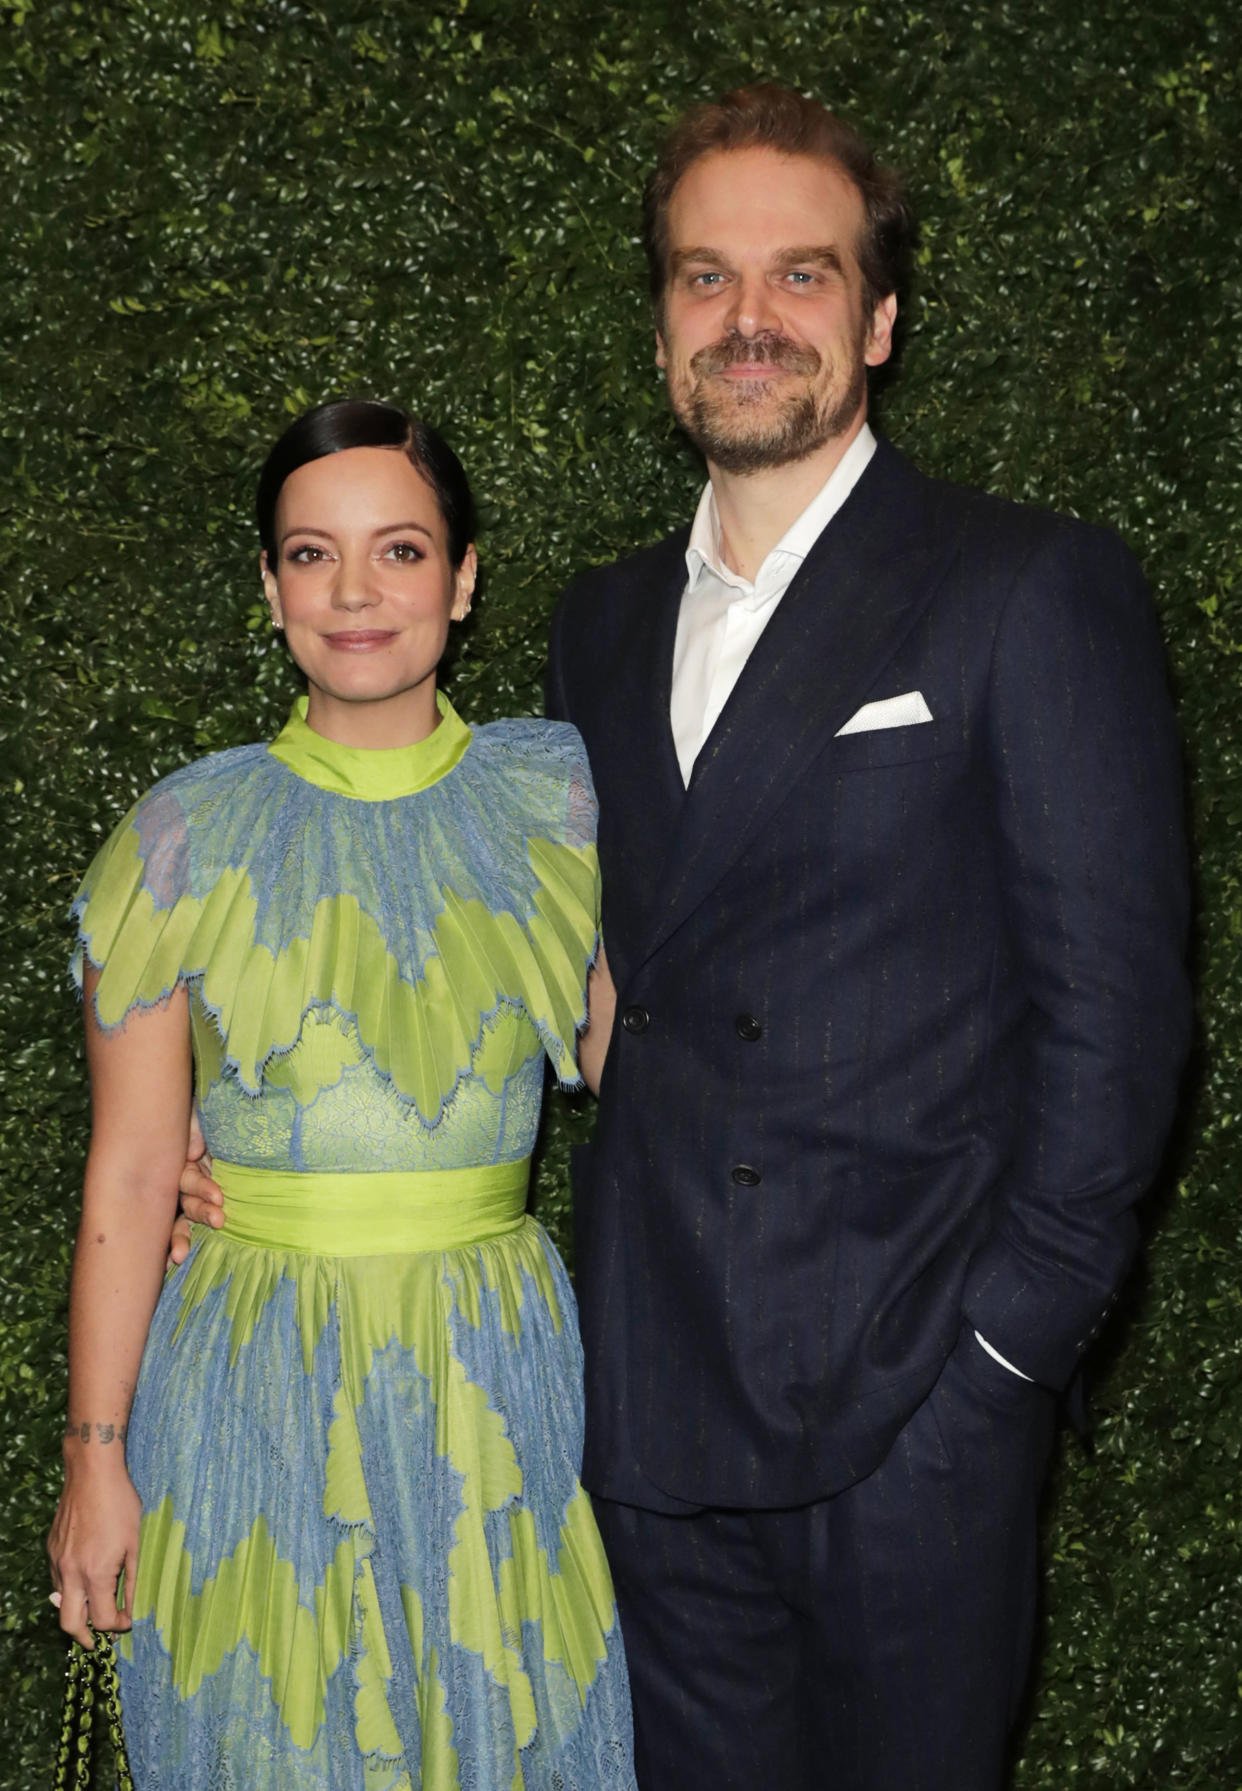 LONDON, ENGLAND - FEBRUARY 01:    Lily Allen and David Harbour arrive at the Charles Finch & CHANEL Pre-BAFTA Party at 5 Hertford Street on February 1, 2020 in London, England.  (Photo by David M. Benett/Dave Benett/Getty Images)